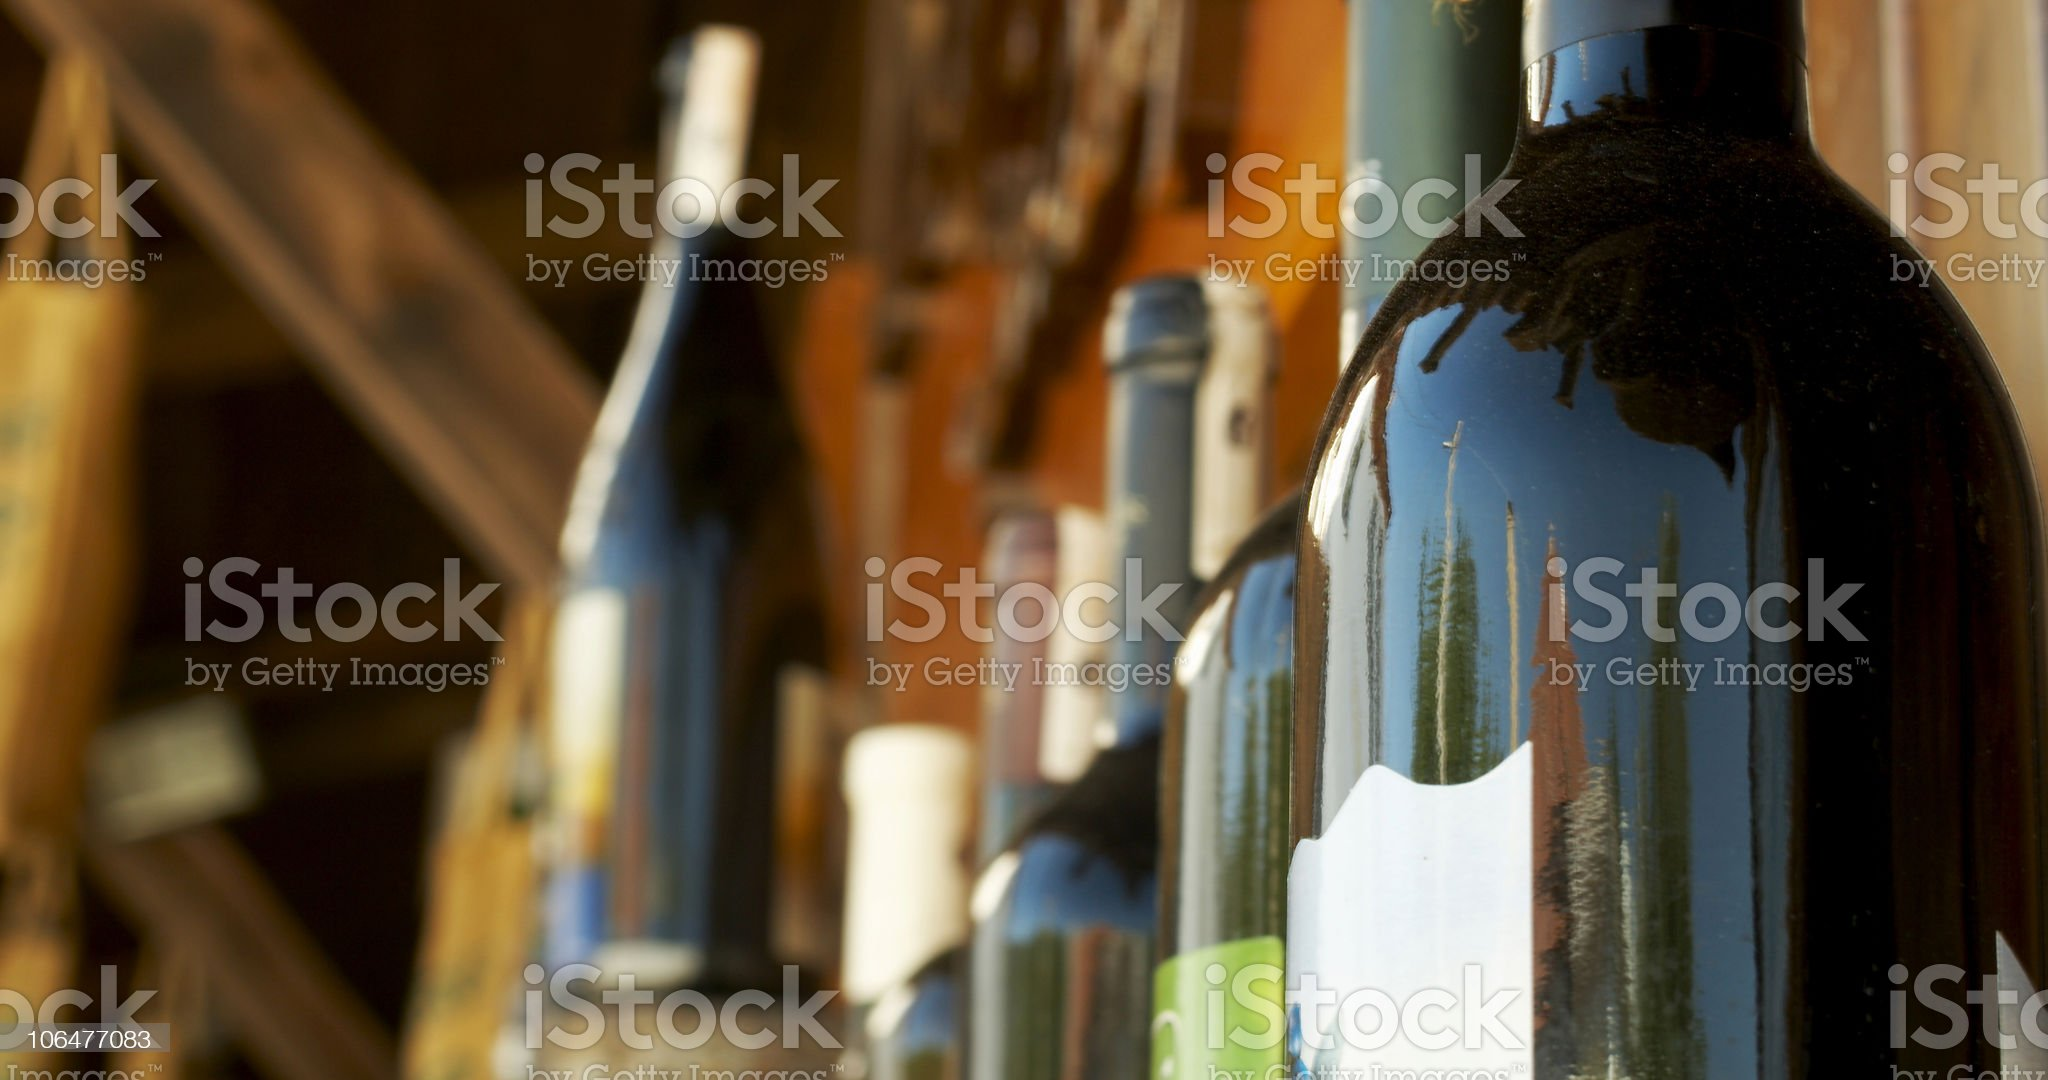 Row of wine bottles in wooden area royalty-free stock photo